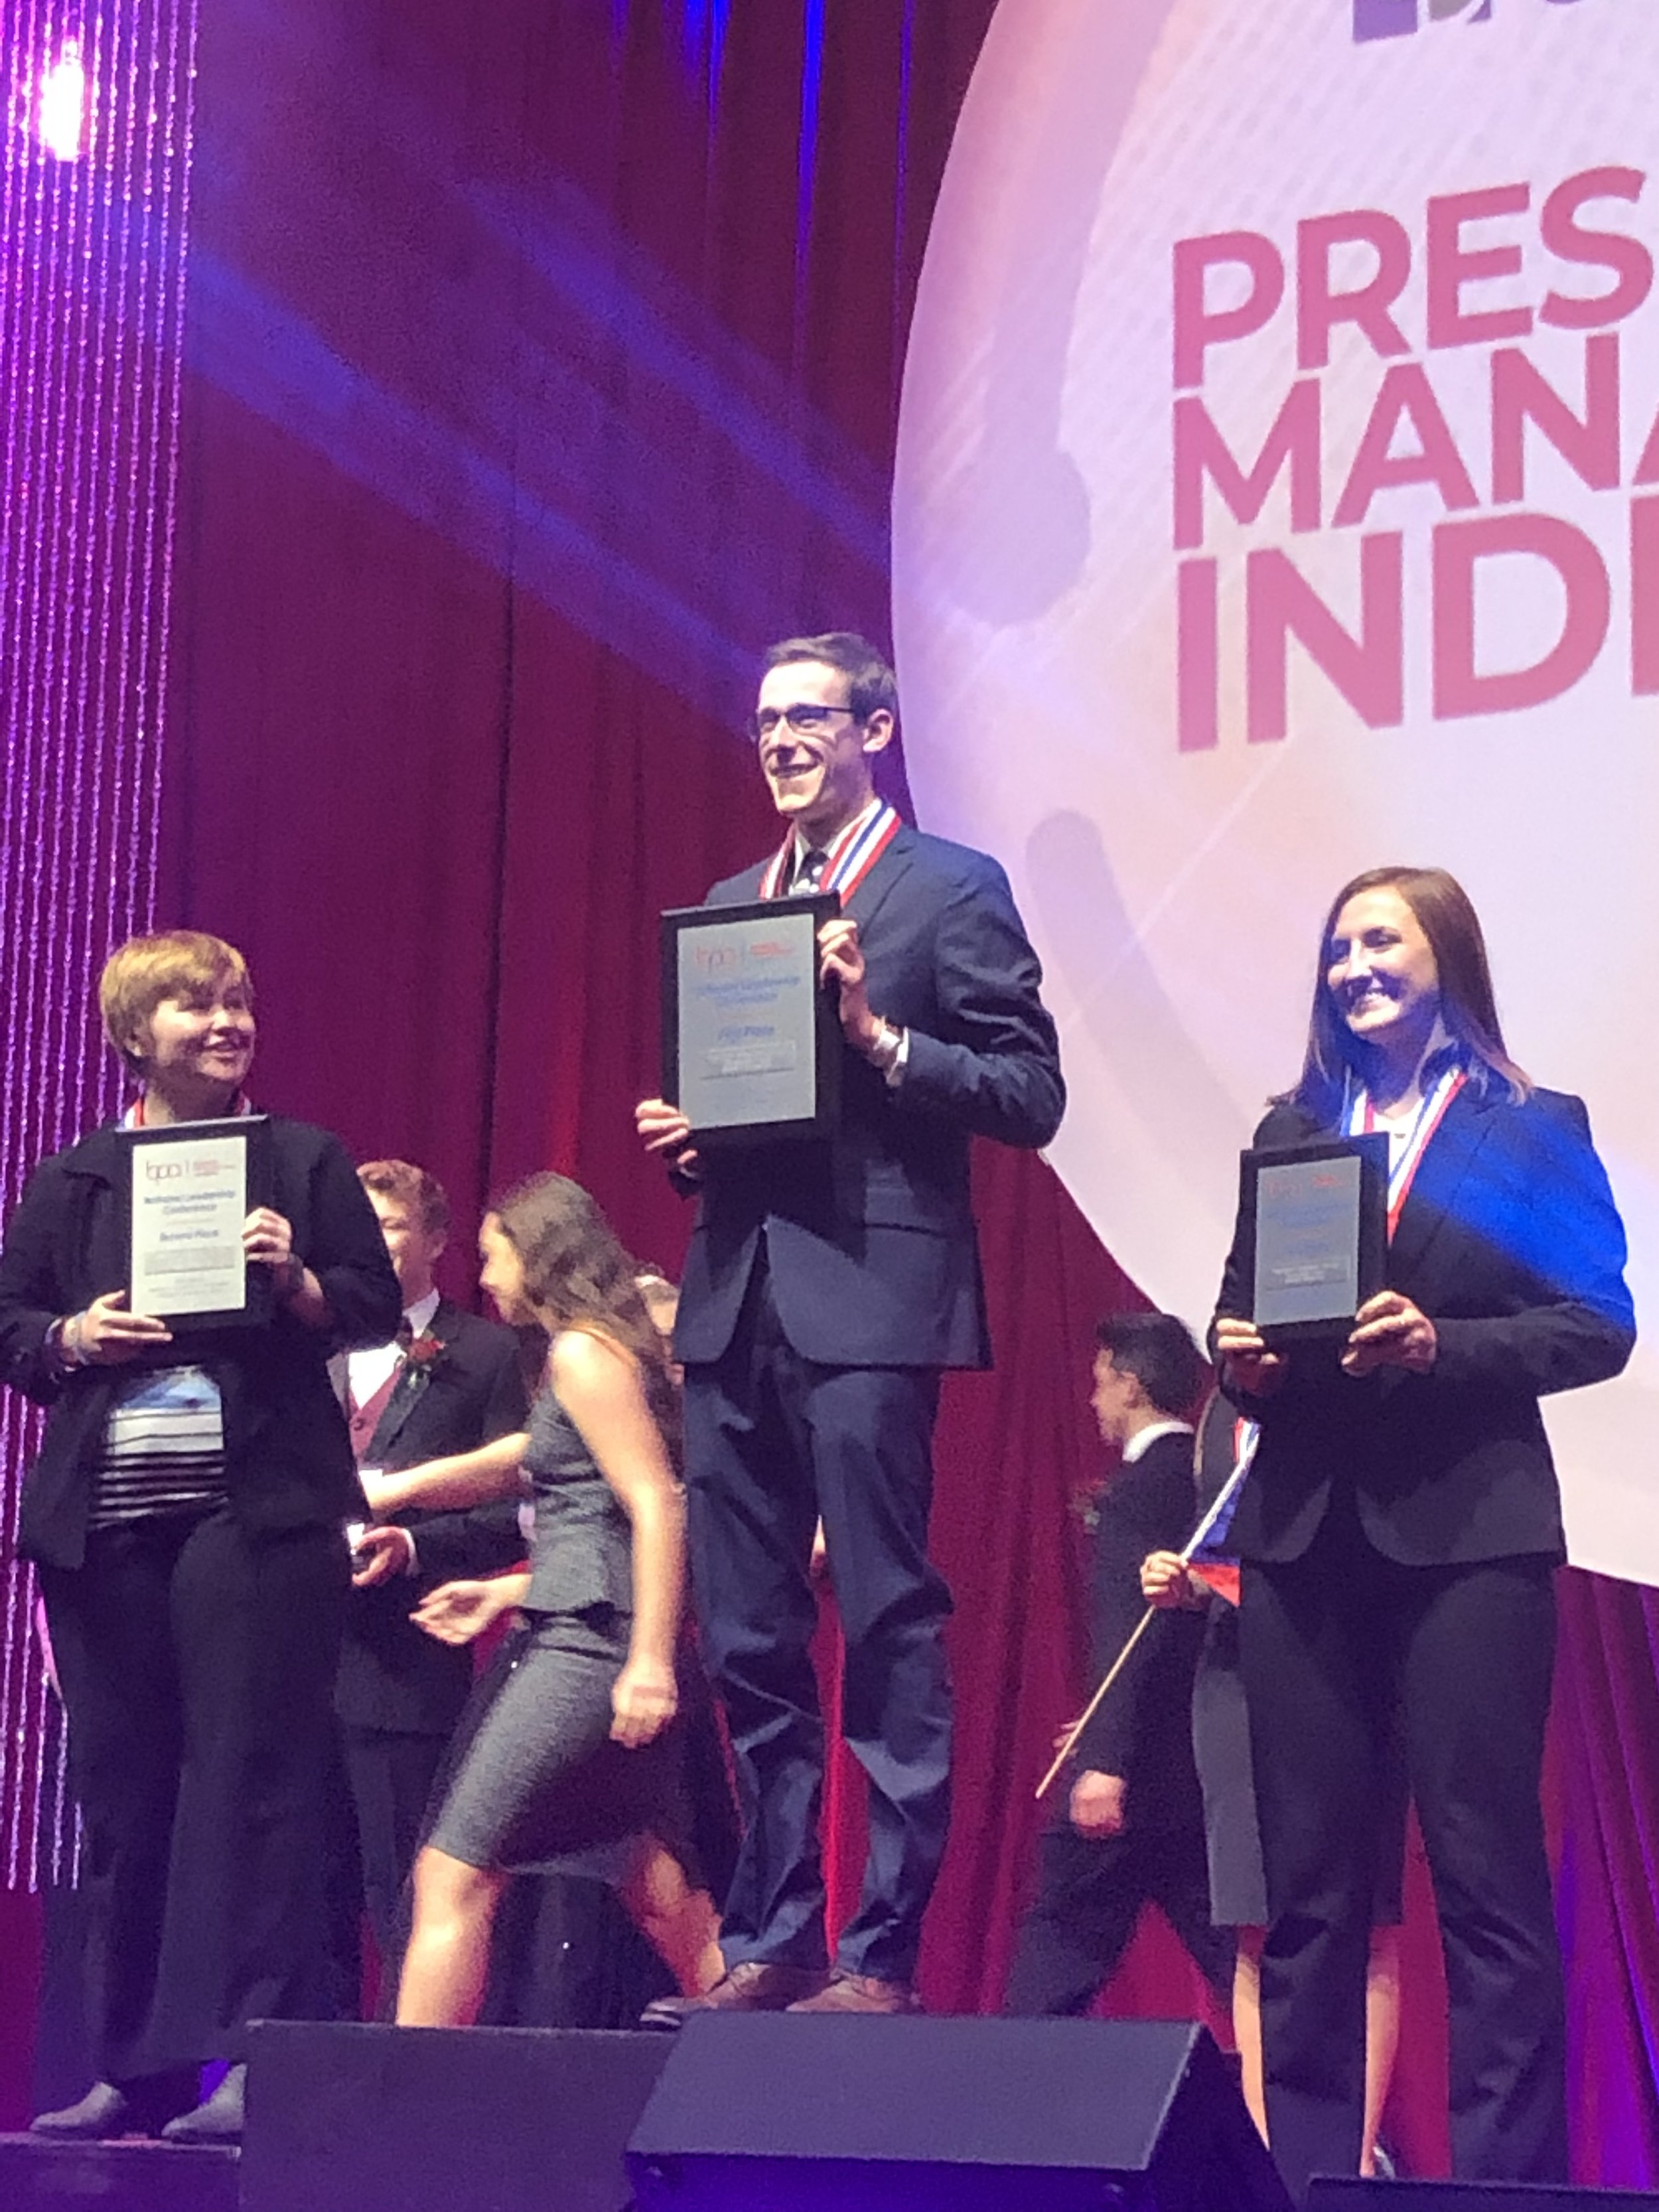 Presentation Management Individual (PS) - Jon Perrault, Northwood University (1st place, center), Jessica Ruby, CMU (3rd place, right) (2019 NLC)